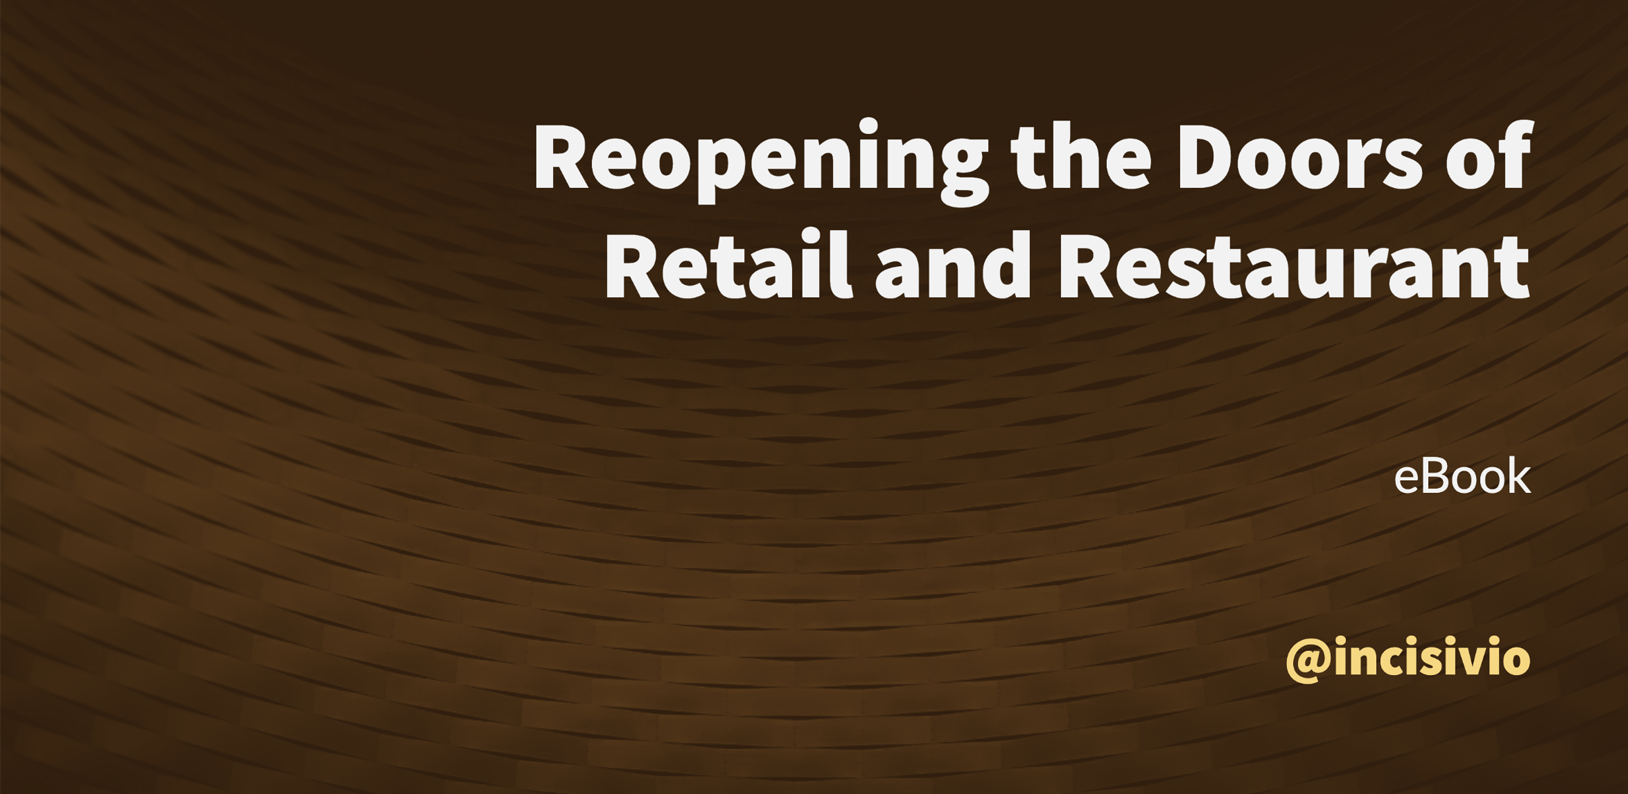 Reopening the Doors of Retail and Restaurant